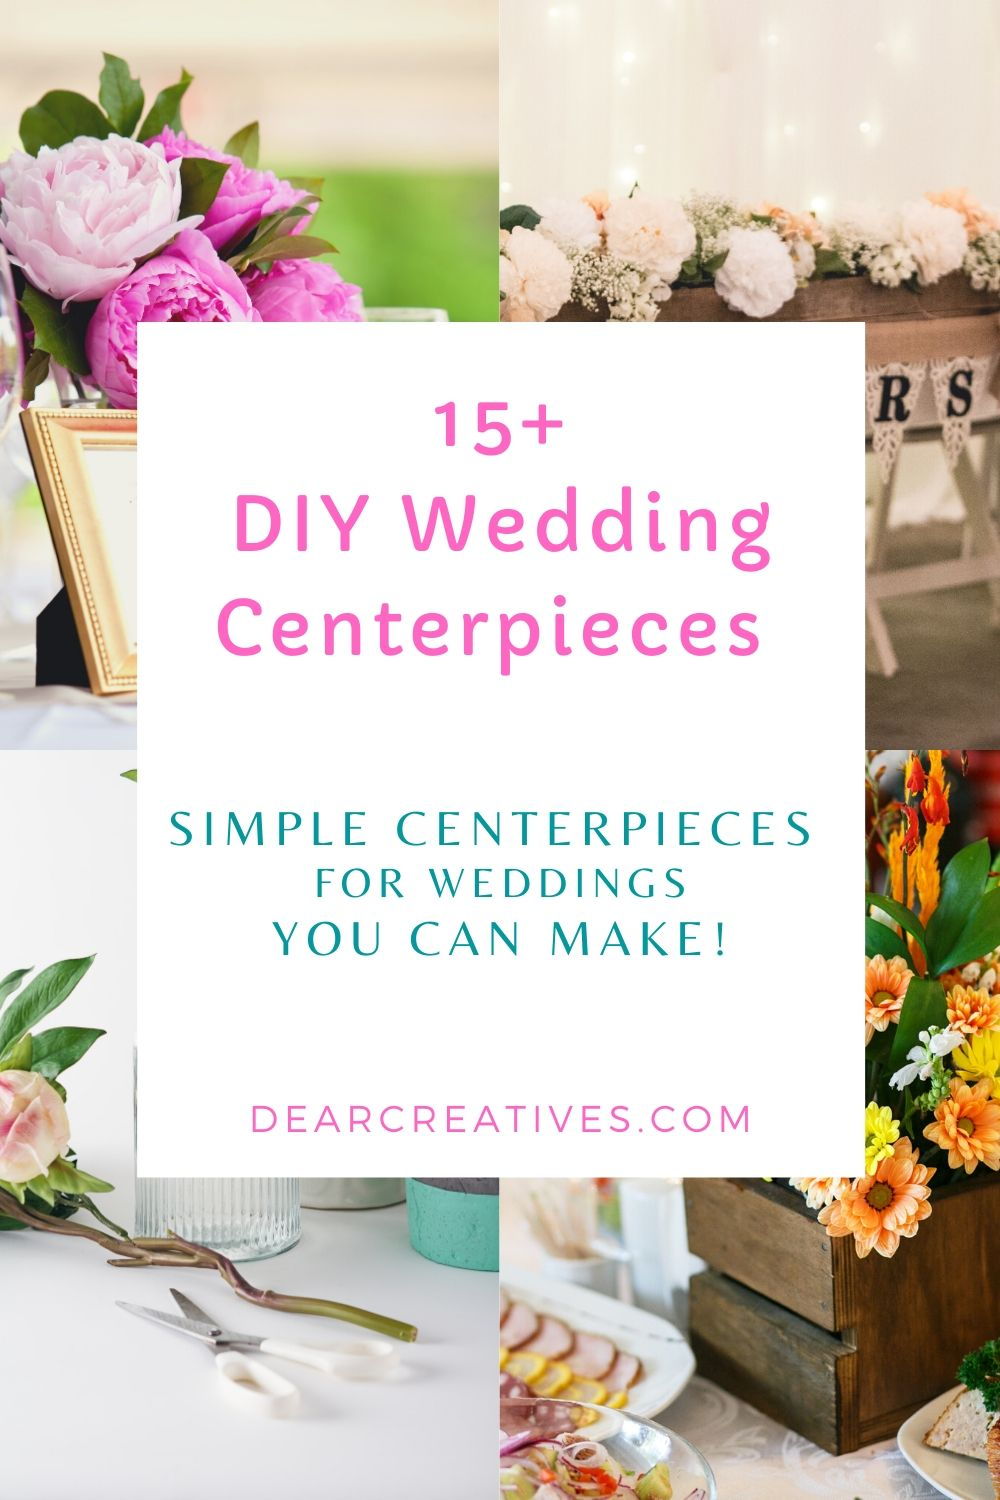 15+ DIY Wedding Centerpieces Ideas